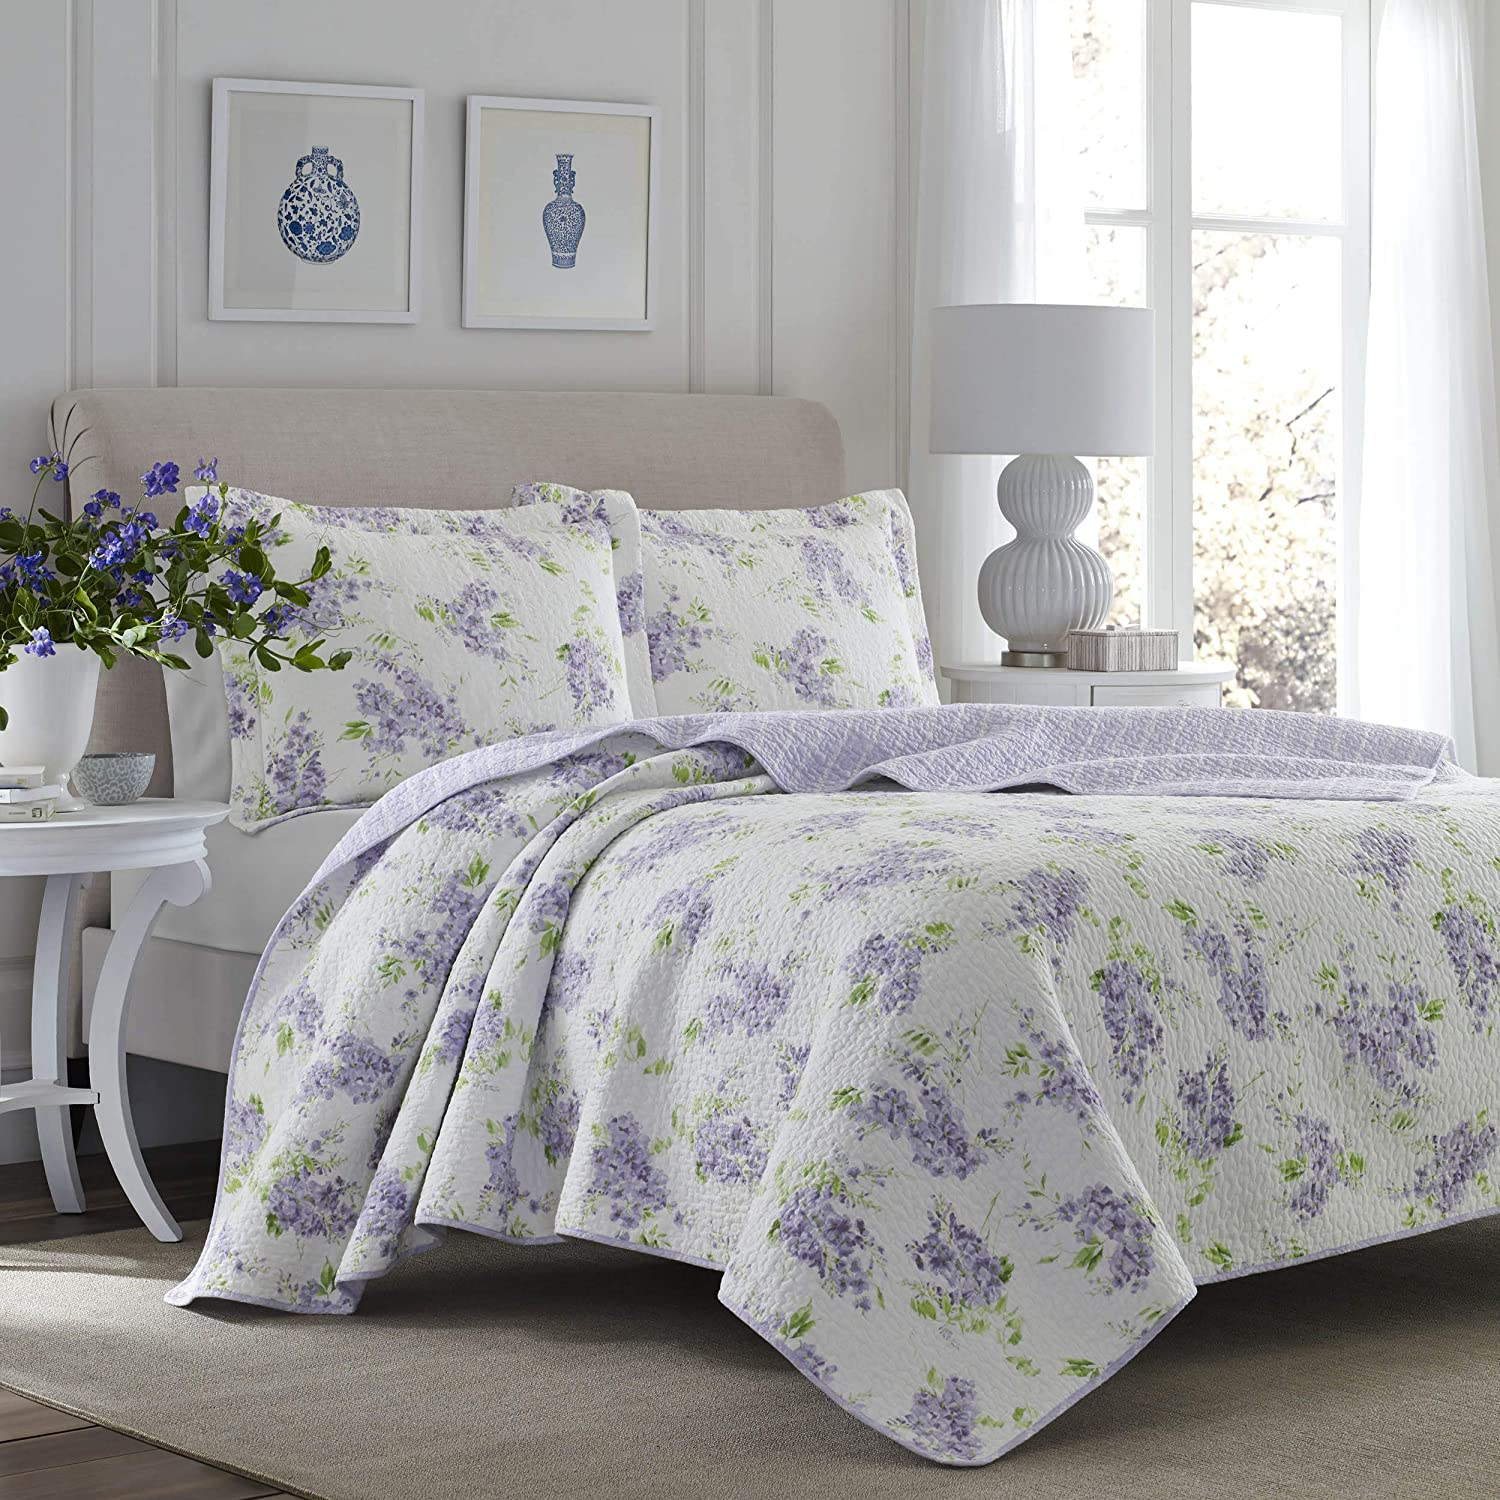 Seasonal Wrap Introduction Laura Recommendation Ashley Home - Keighley Cotto 100% Quilt Set Collection